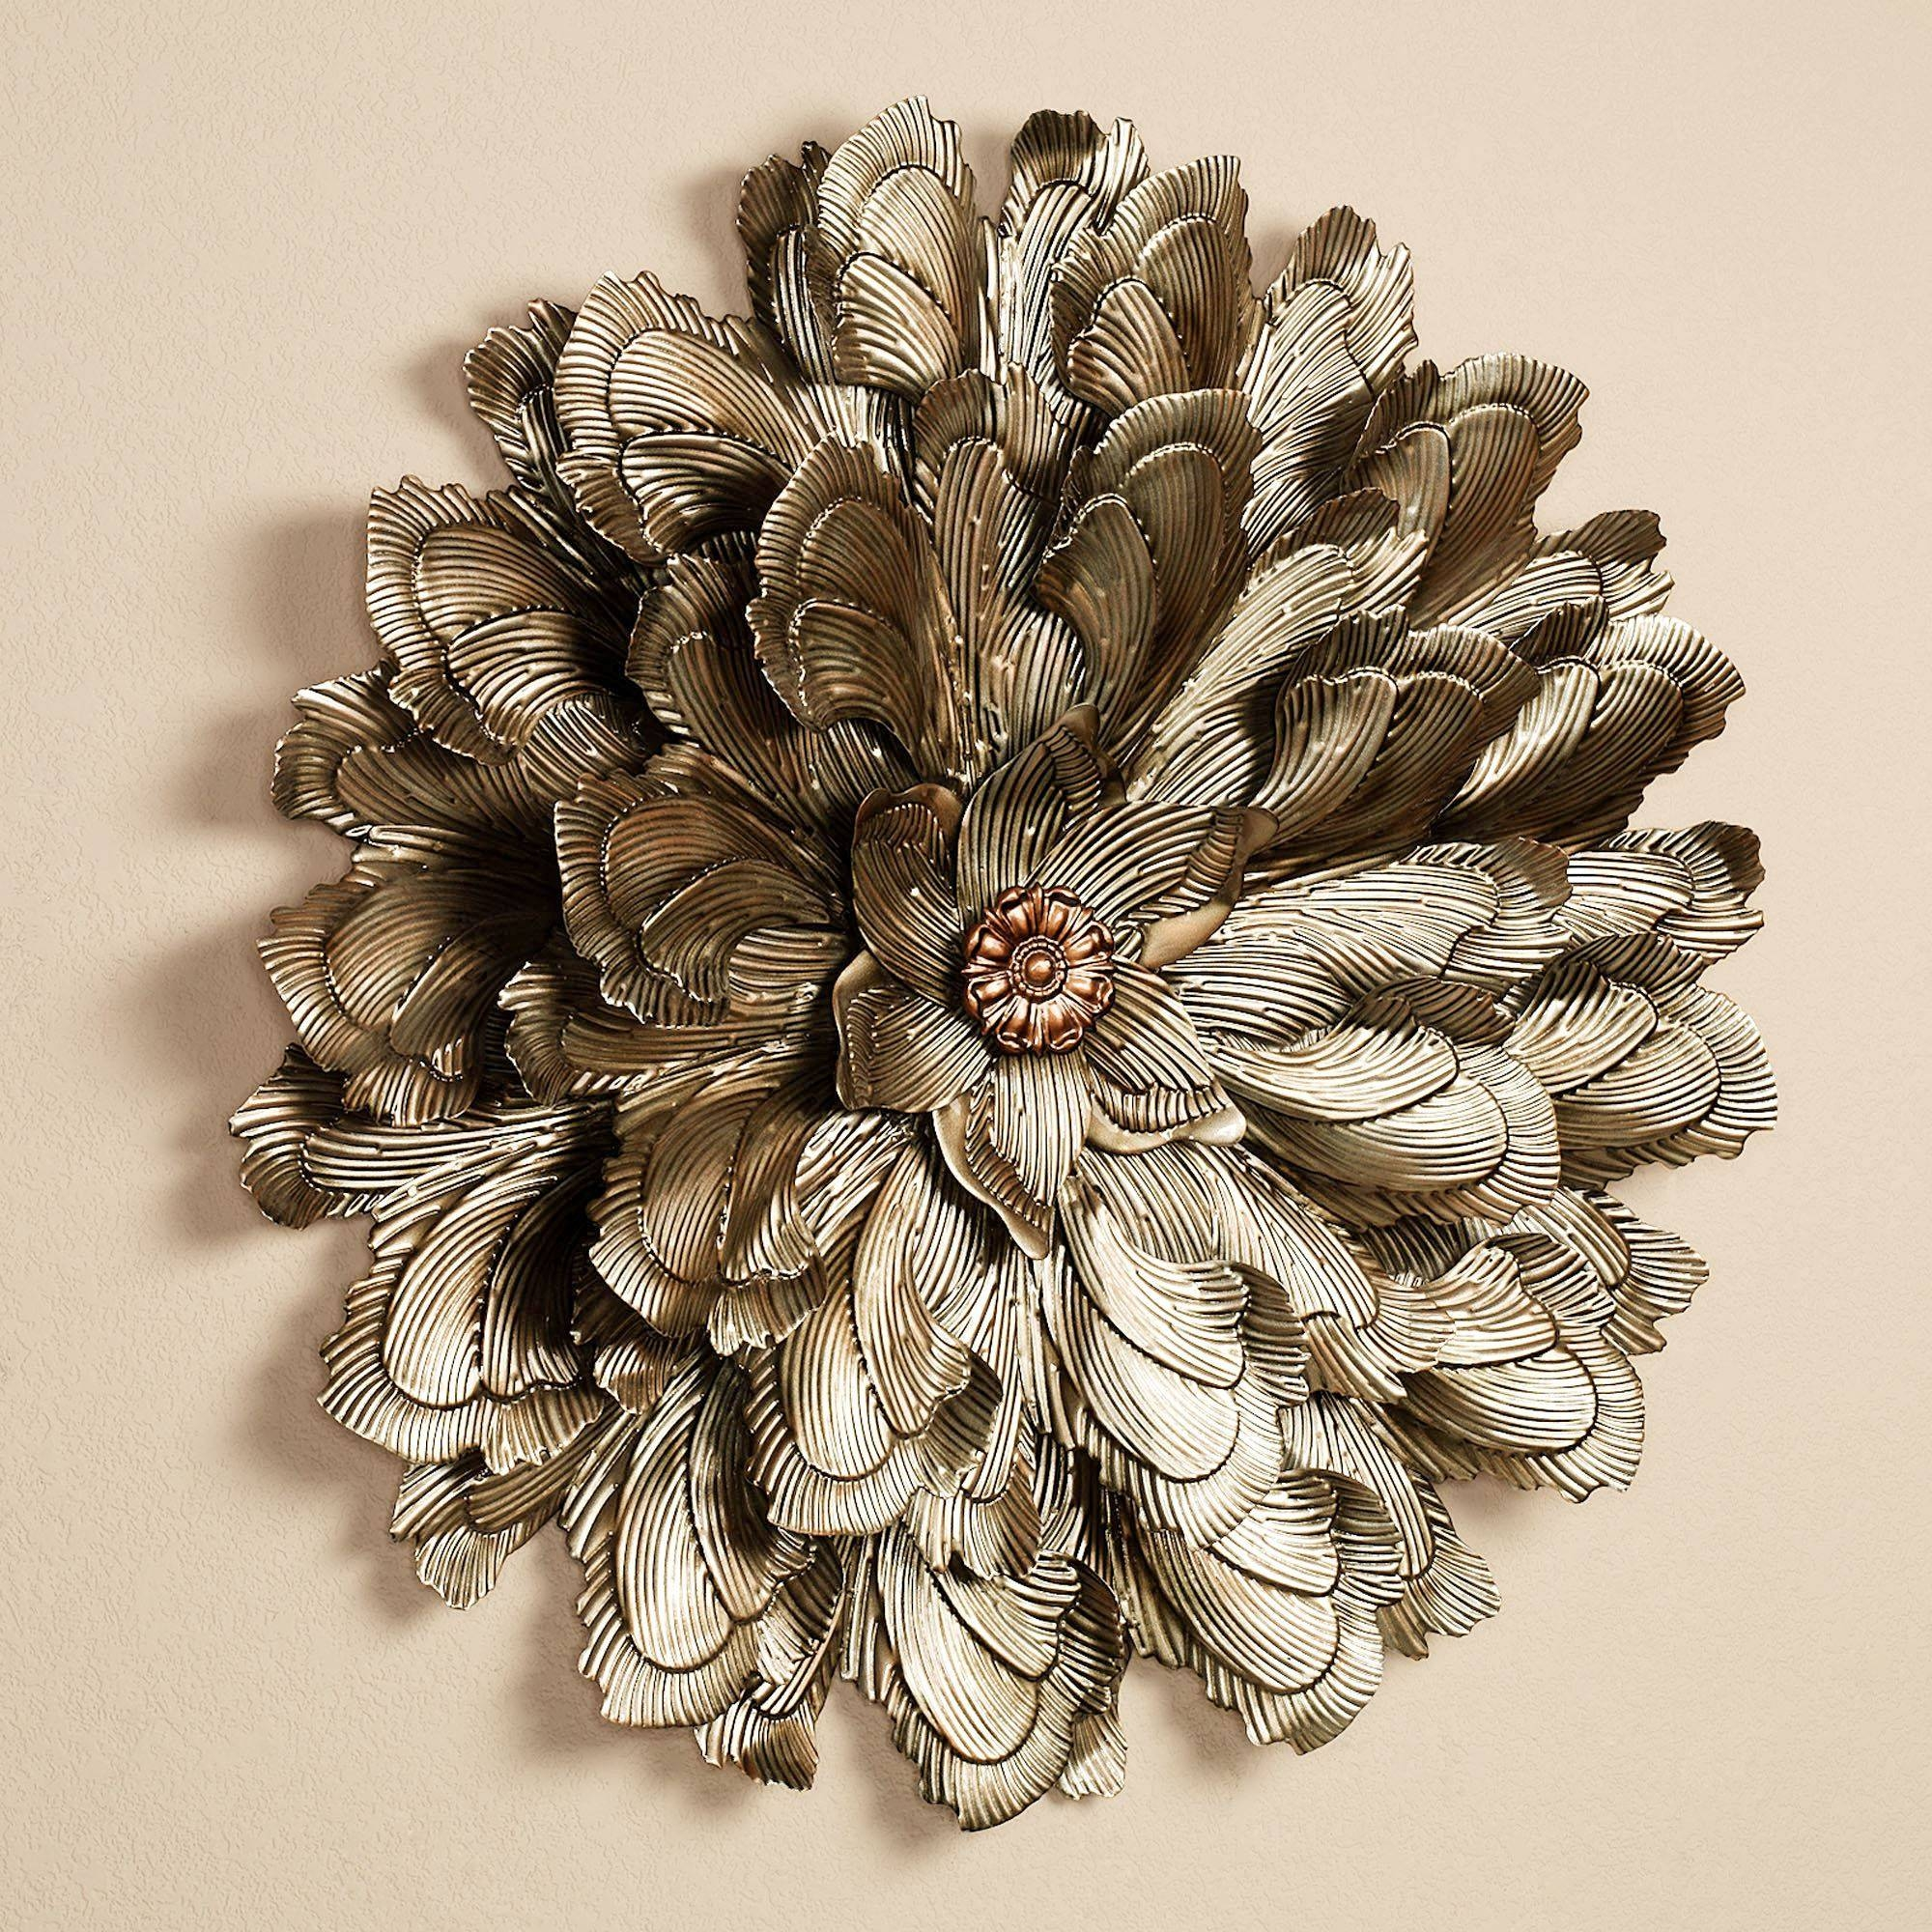 41 Silver Metal Wall Art Flowers, Home Metal Wall Art Wall Decor Within Newest Metal Wall Art Sculptures (View 1 of 20)